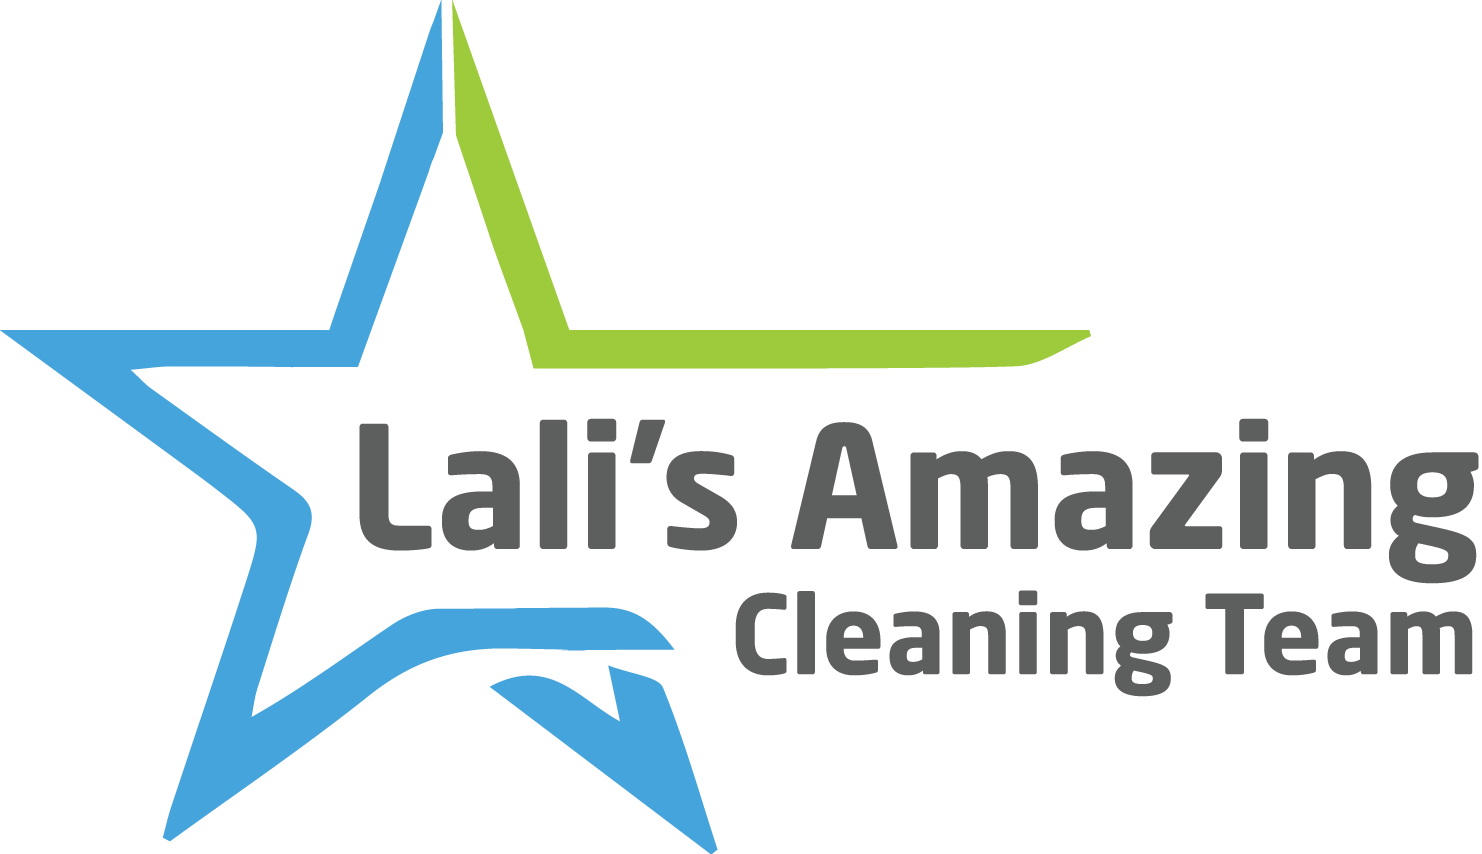 Lali's Amazing Cleaning Team